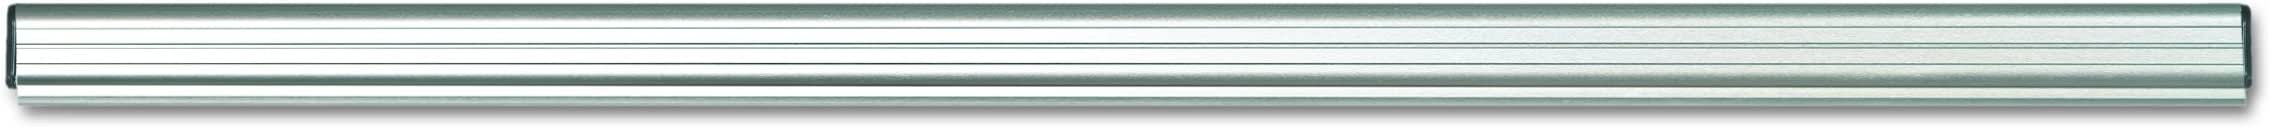 Advantus Grip-A-Strip Display Rail, 36 Inches Long, 1.5 Inches High, Satin Finish Aluminum (AVT2005)